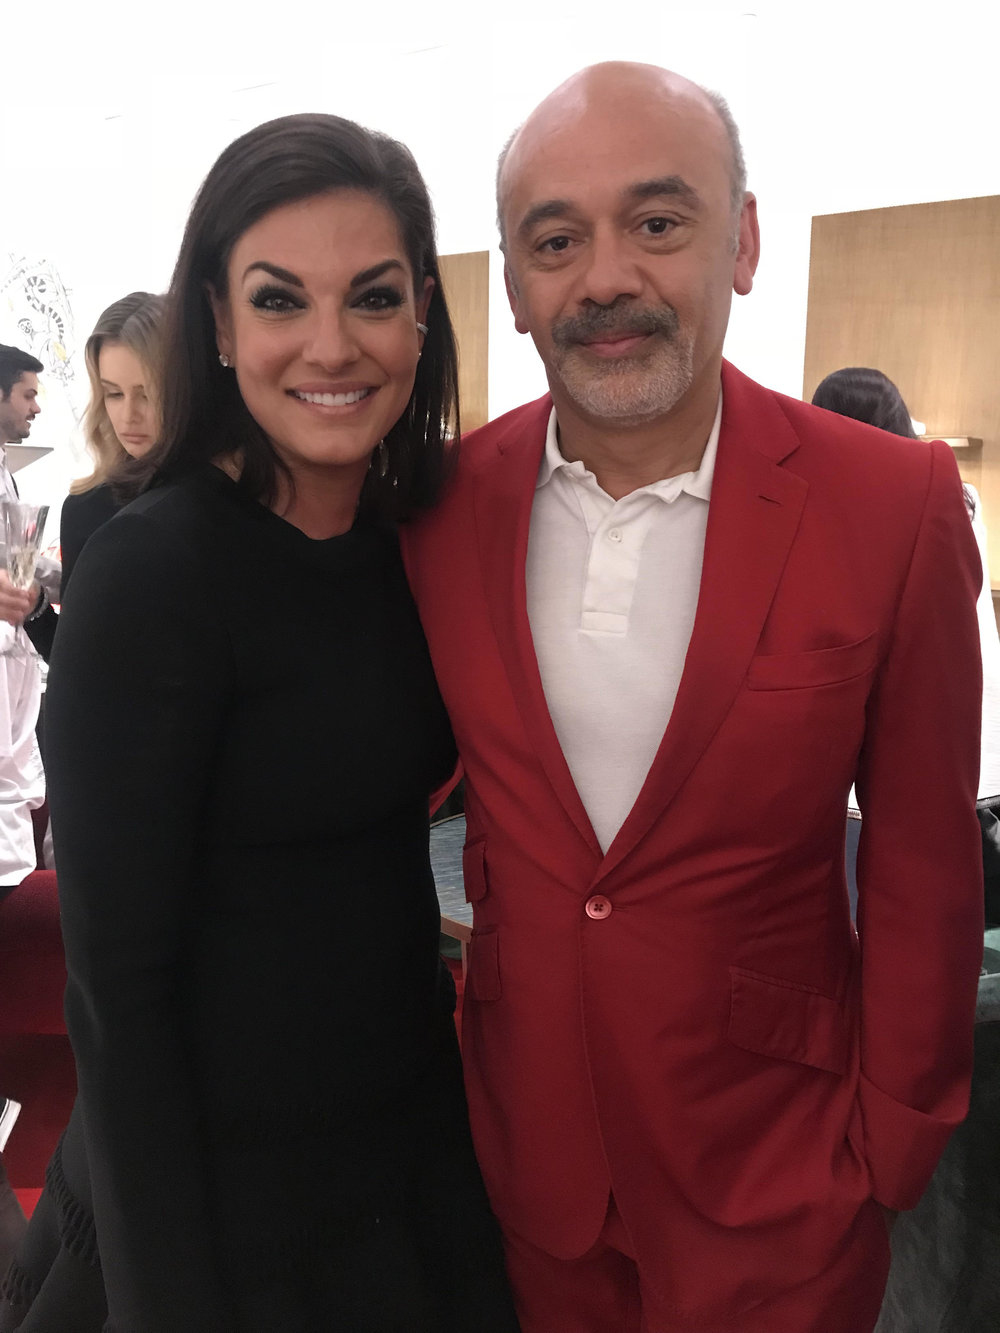 Nicole O'Neil and Christian Louboutin.jpg